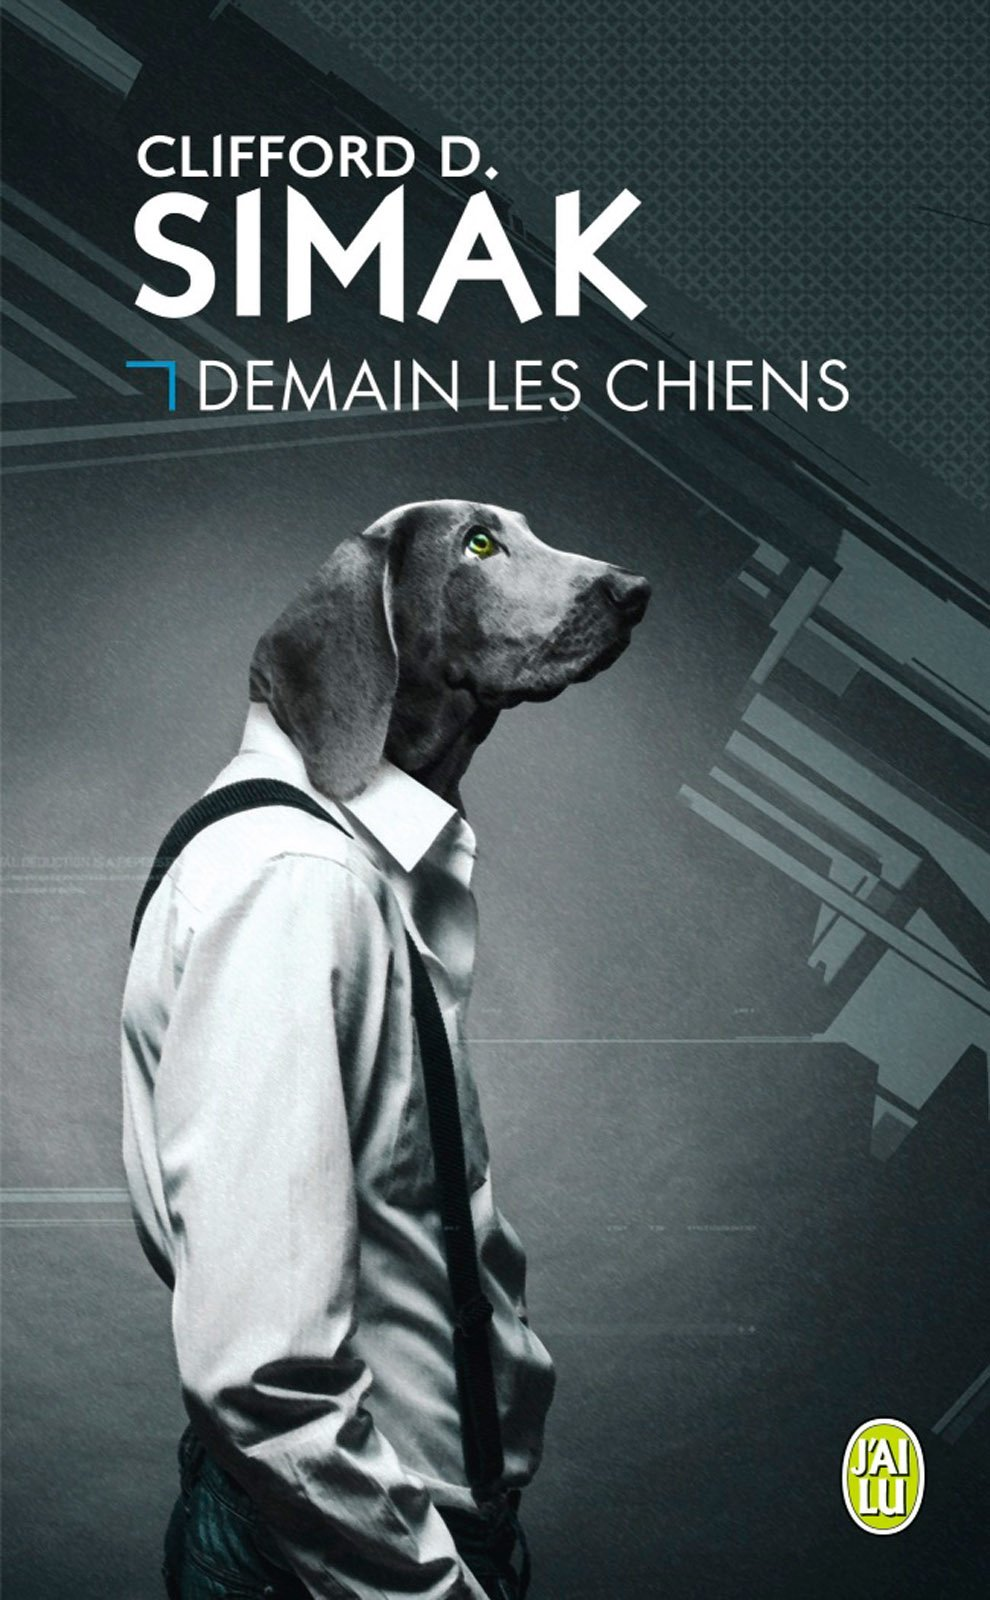 Image OfDemain Les Chiens (French Edition)